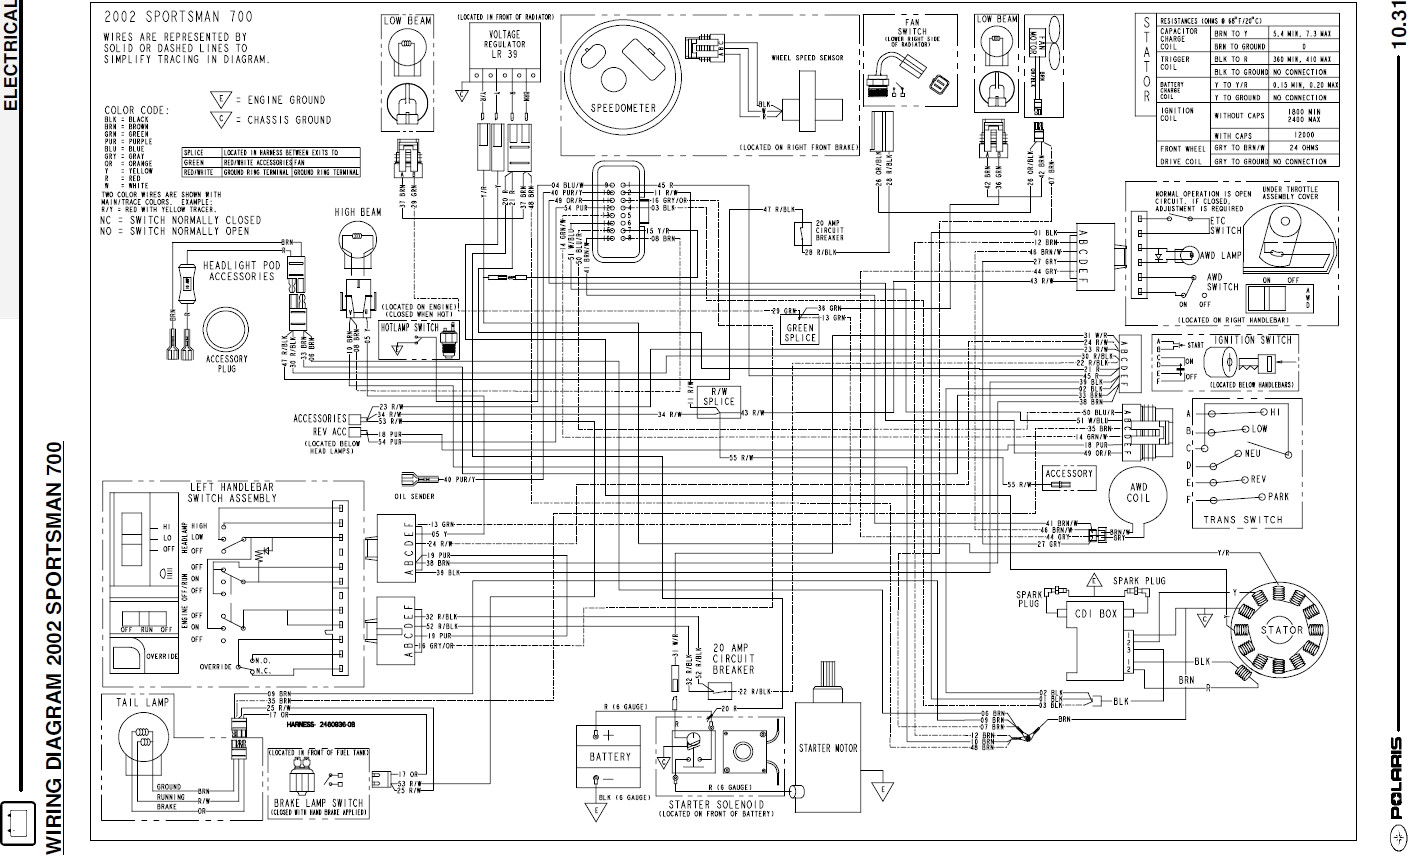 Harley Street Glide Ignition Wiring Diagram on harley street glide wheels, harley street glide antenna, harley street glide stereo upgrade, harley street glide seats, tail light wiring diagram, harley street glide dimensions, harley street glide parts, harley street glide cover, harley street glide aftermarket radio, solar street light wiring diagram, harley street glide air cleaner, harley street glide tires, harley street glide frame, harley street glide rear suspension, harley fxr wiring-diagram, harley street glide spark plugs, harley street glide lights, harley street glide horn, harley street glide engine,